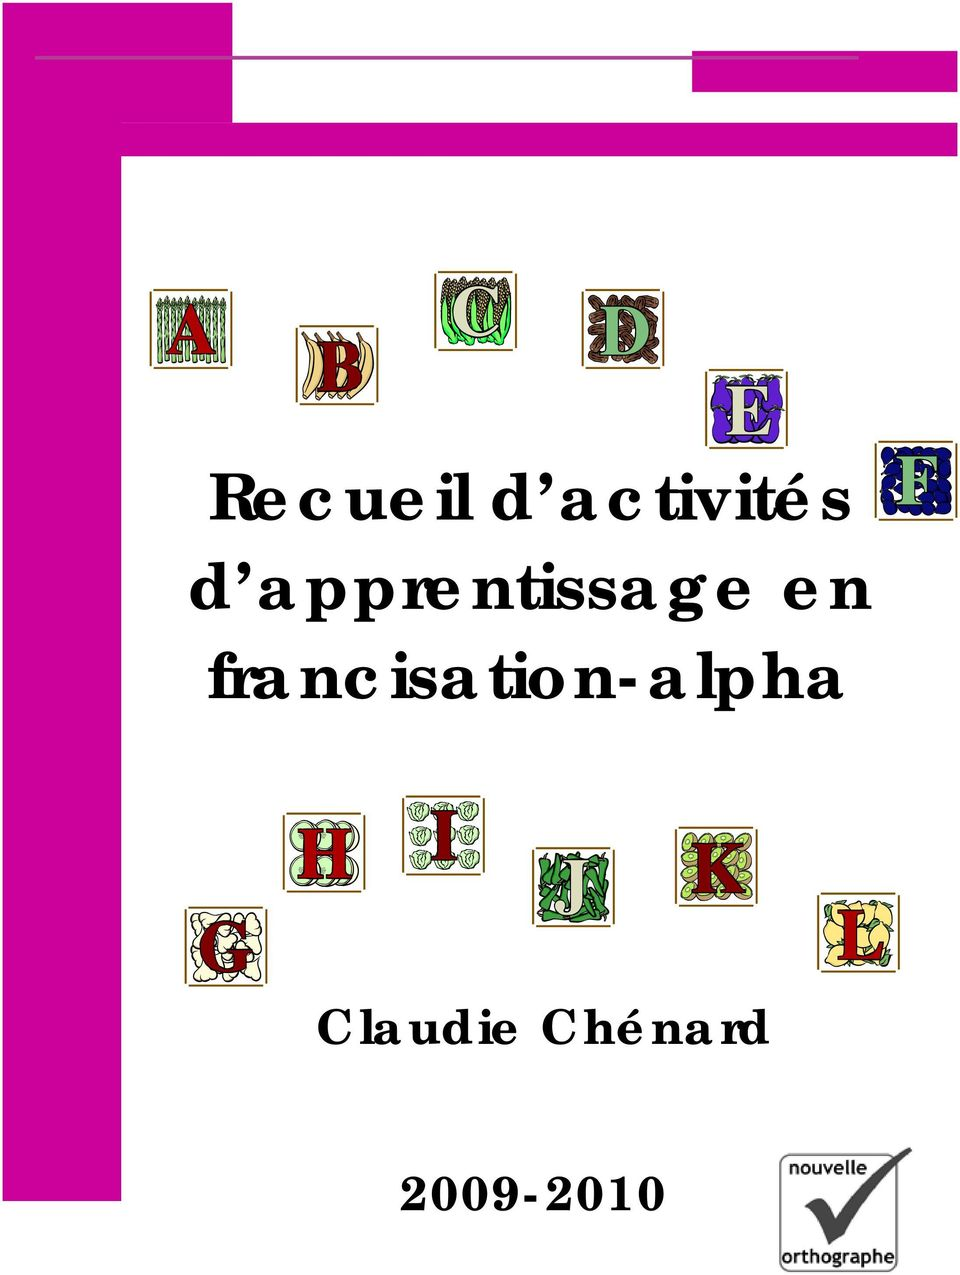 apprentissage en